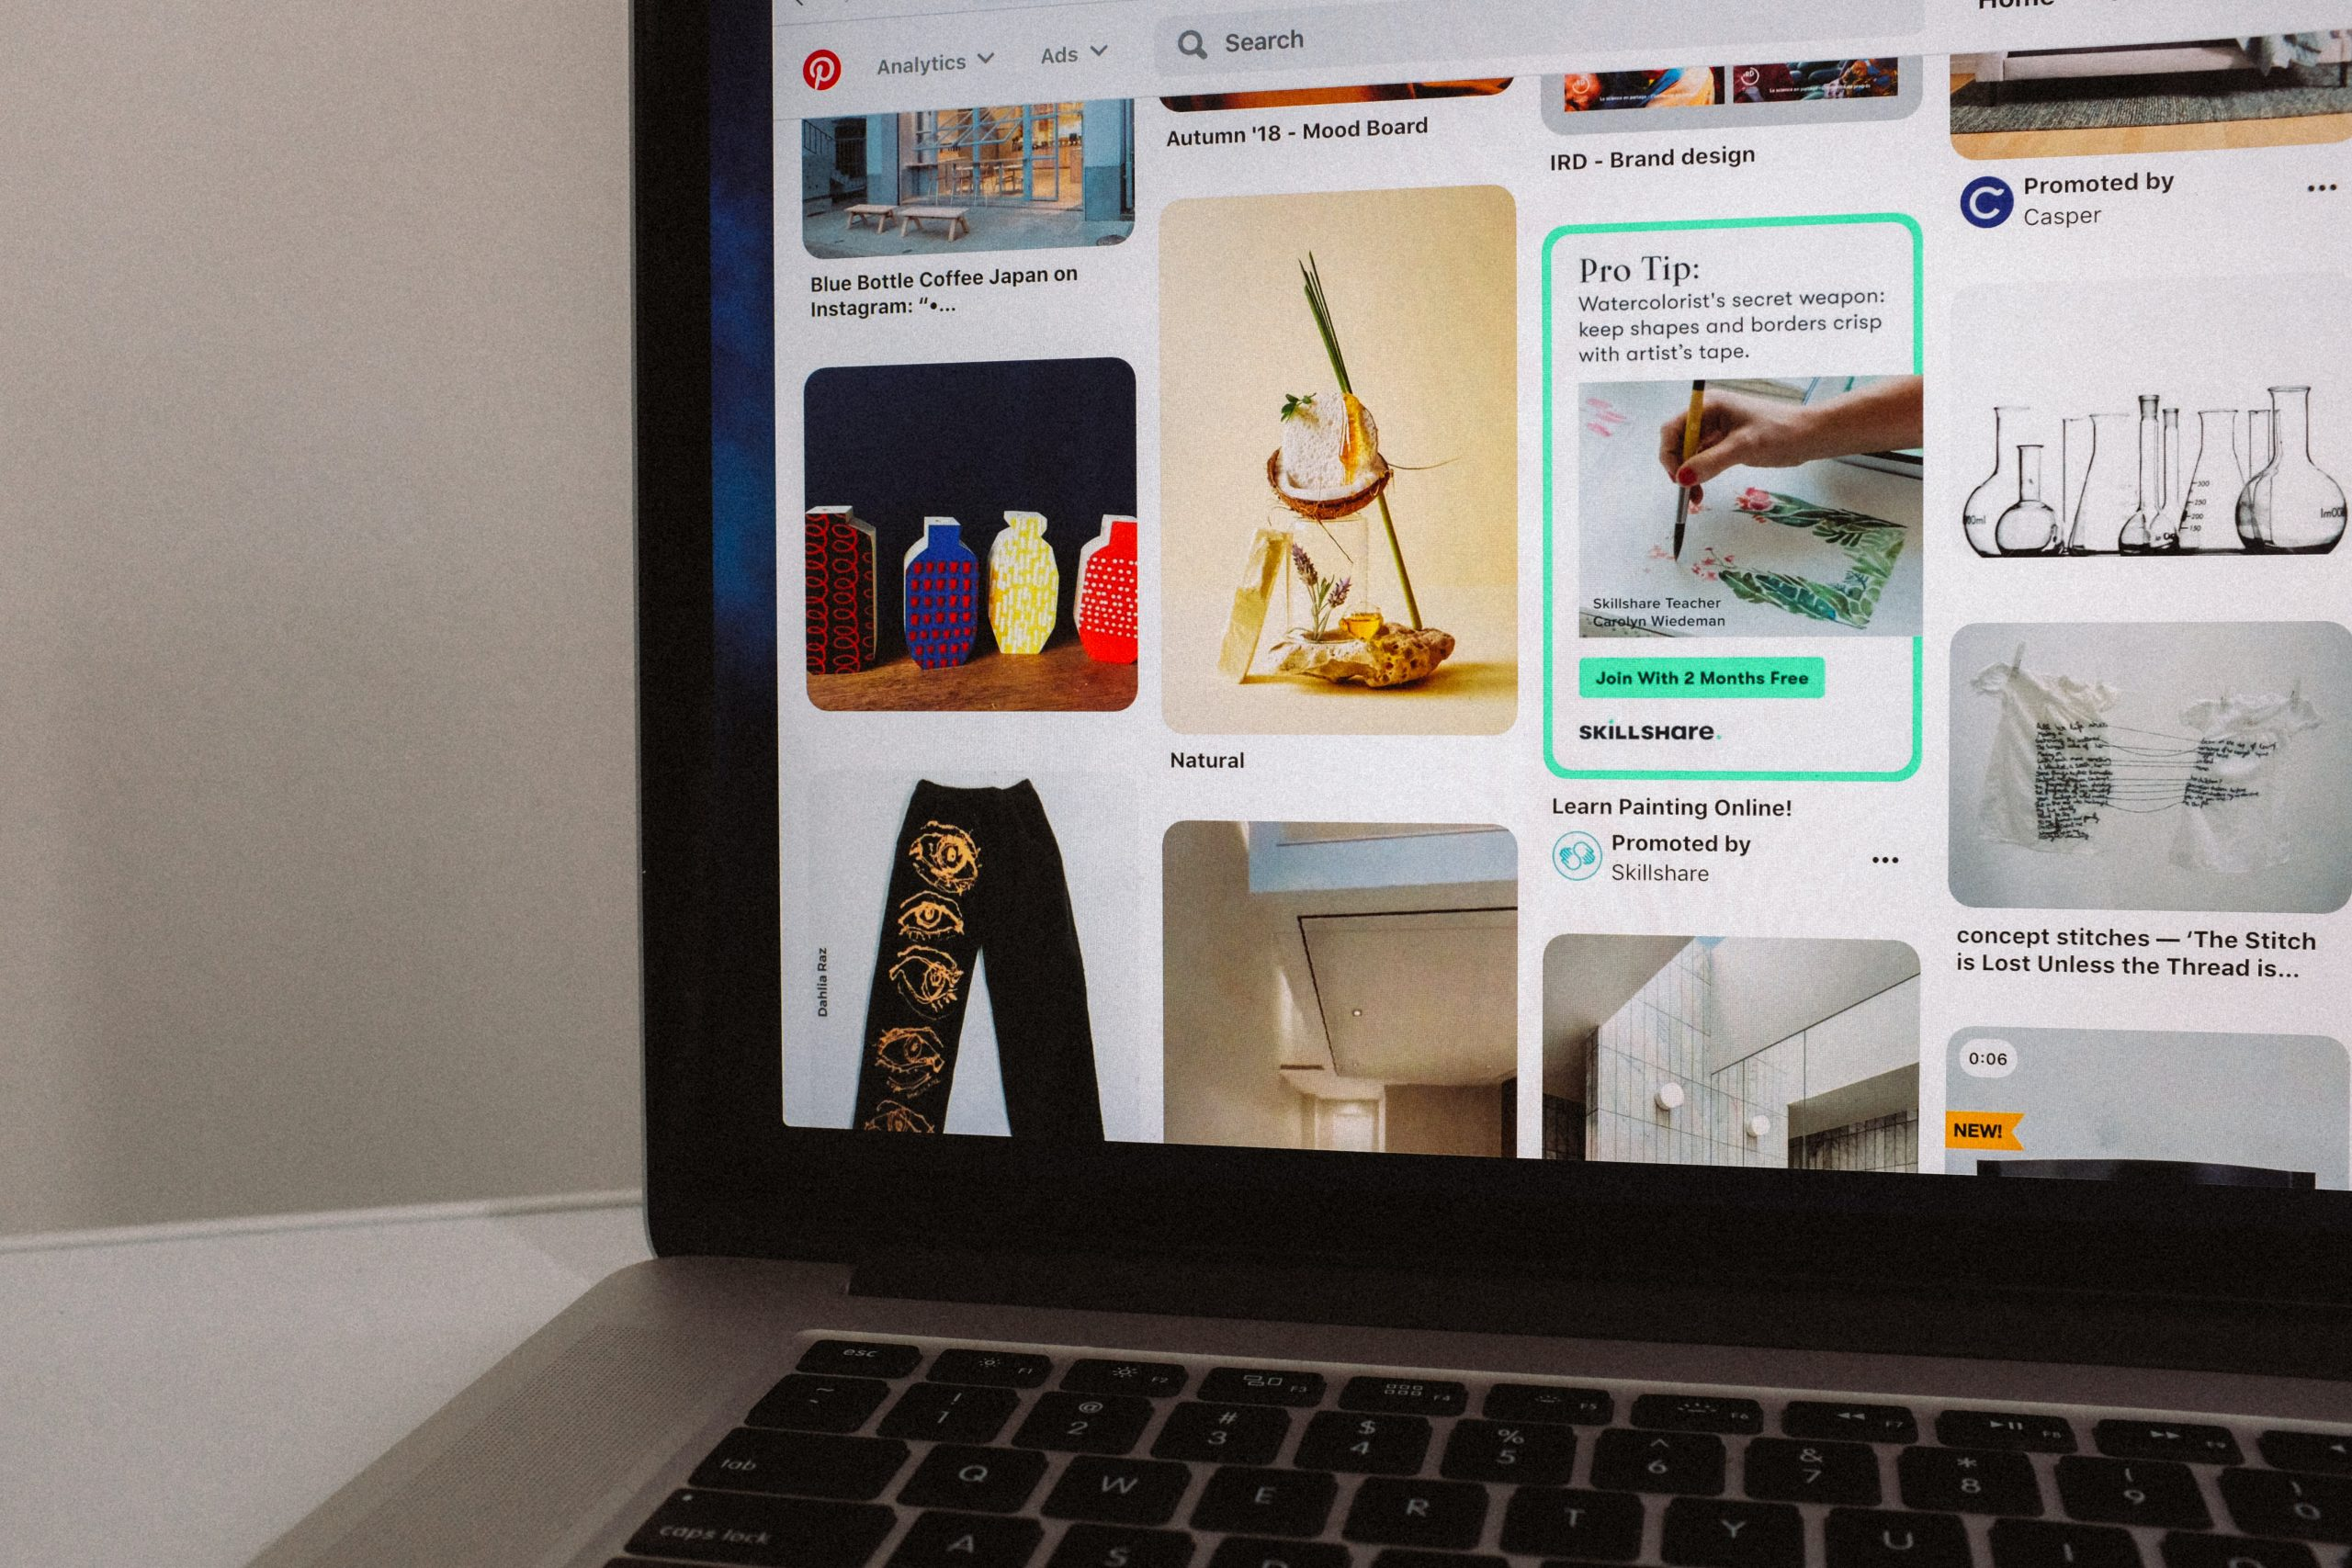 But Do I Really NEED Pinterest for my Business? You Decide!